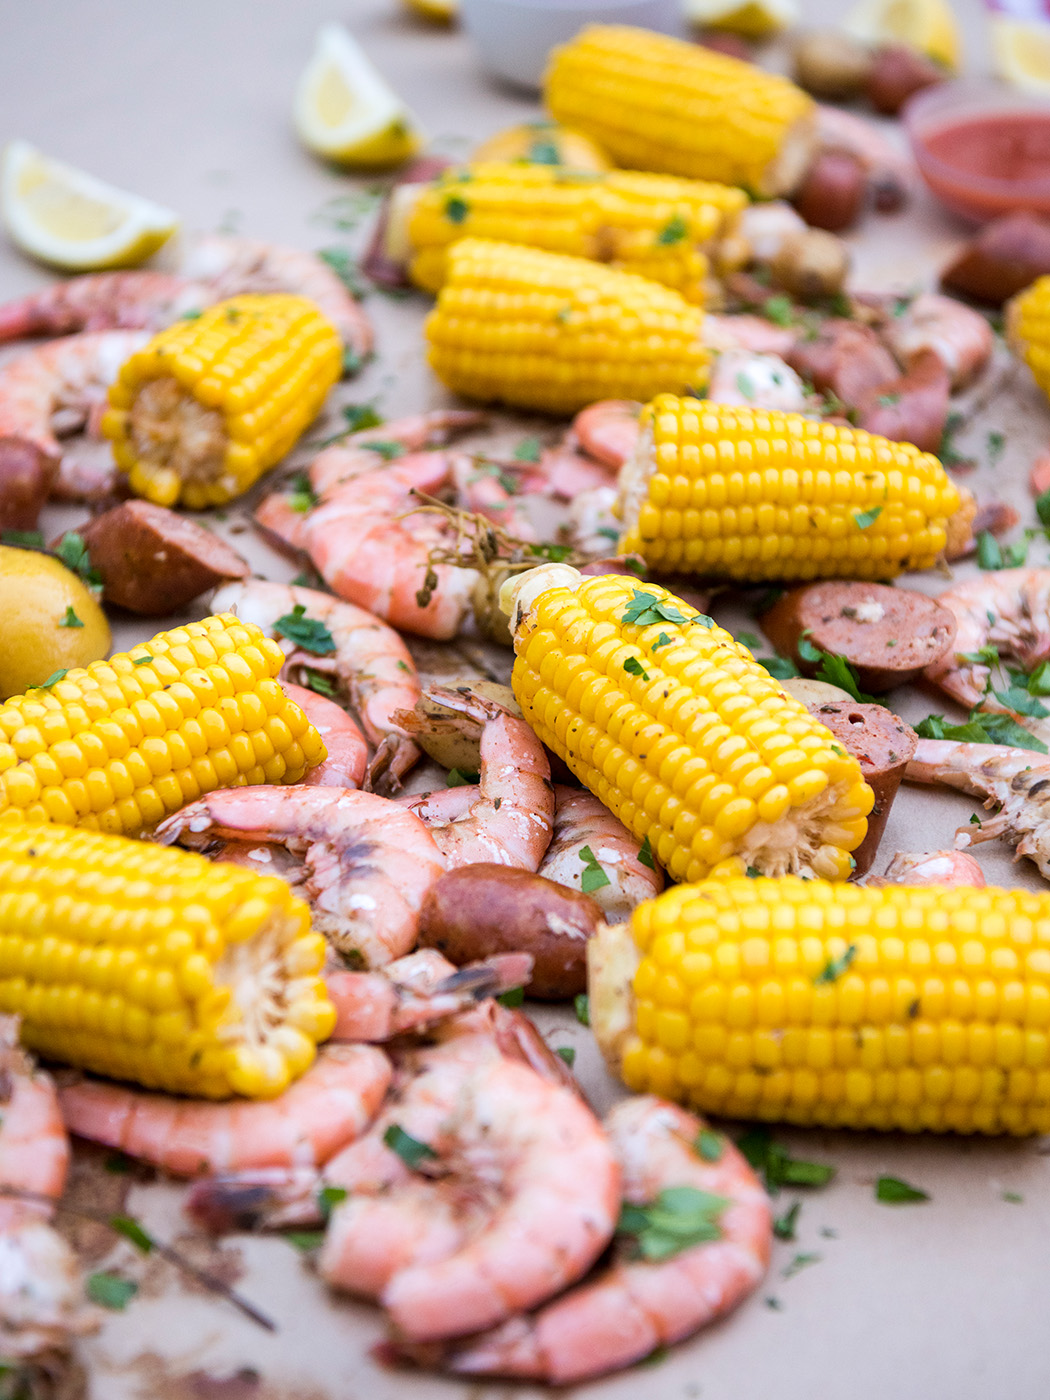 Deborah_Farnault_Food_Network_How-To-Win-Summer-Cooler-Shrimp-Boil-3x4-0221.jpg